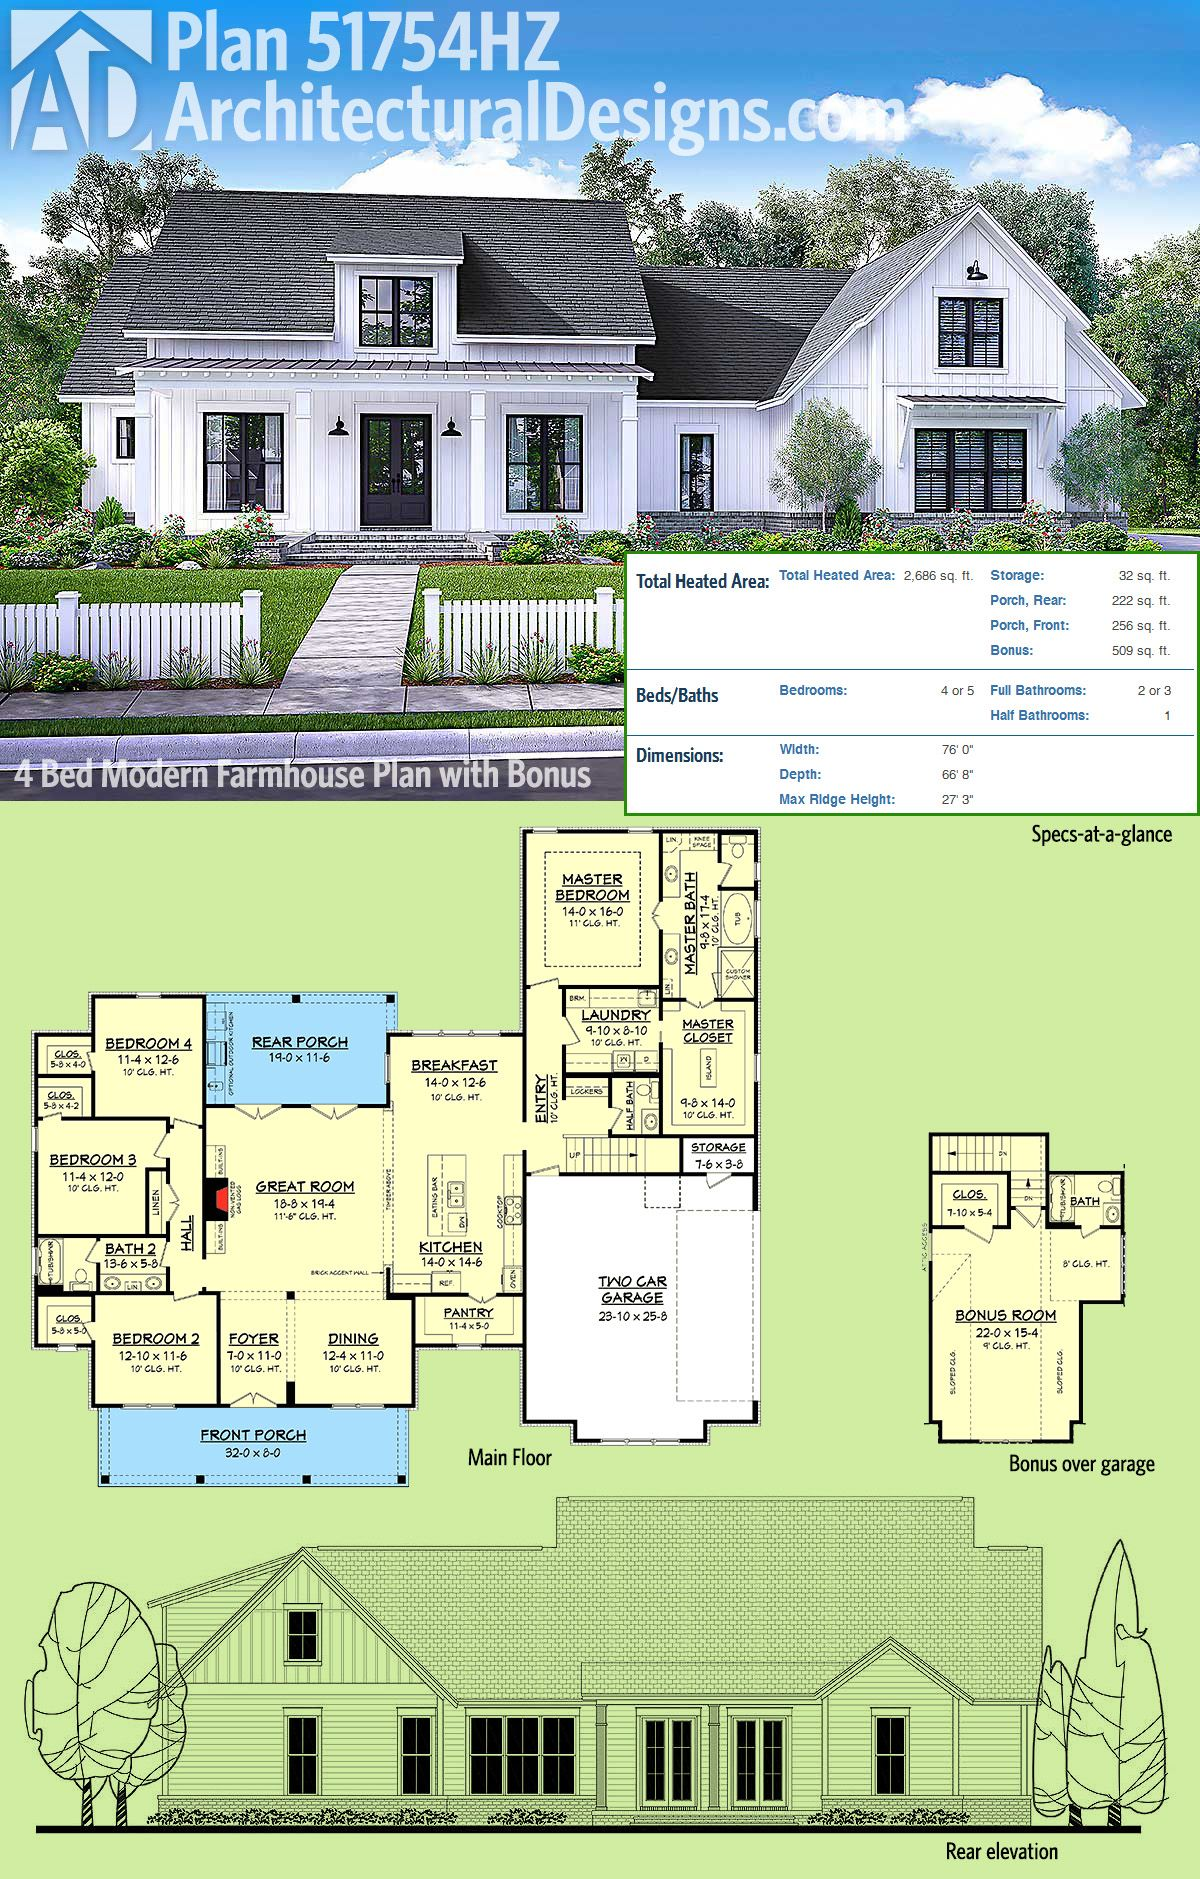 Plan 51754hz modern farmhouse plan with bonus room for Small modern farmhouse plans